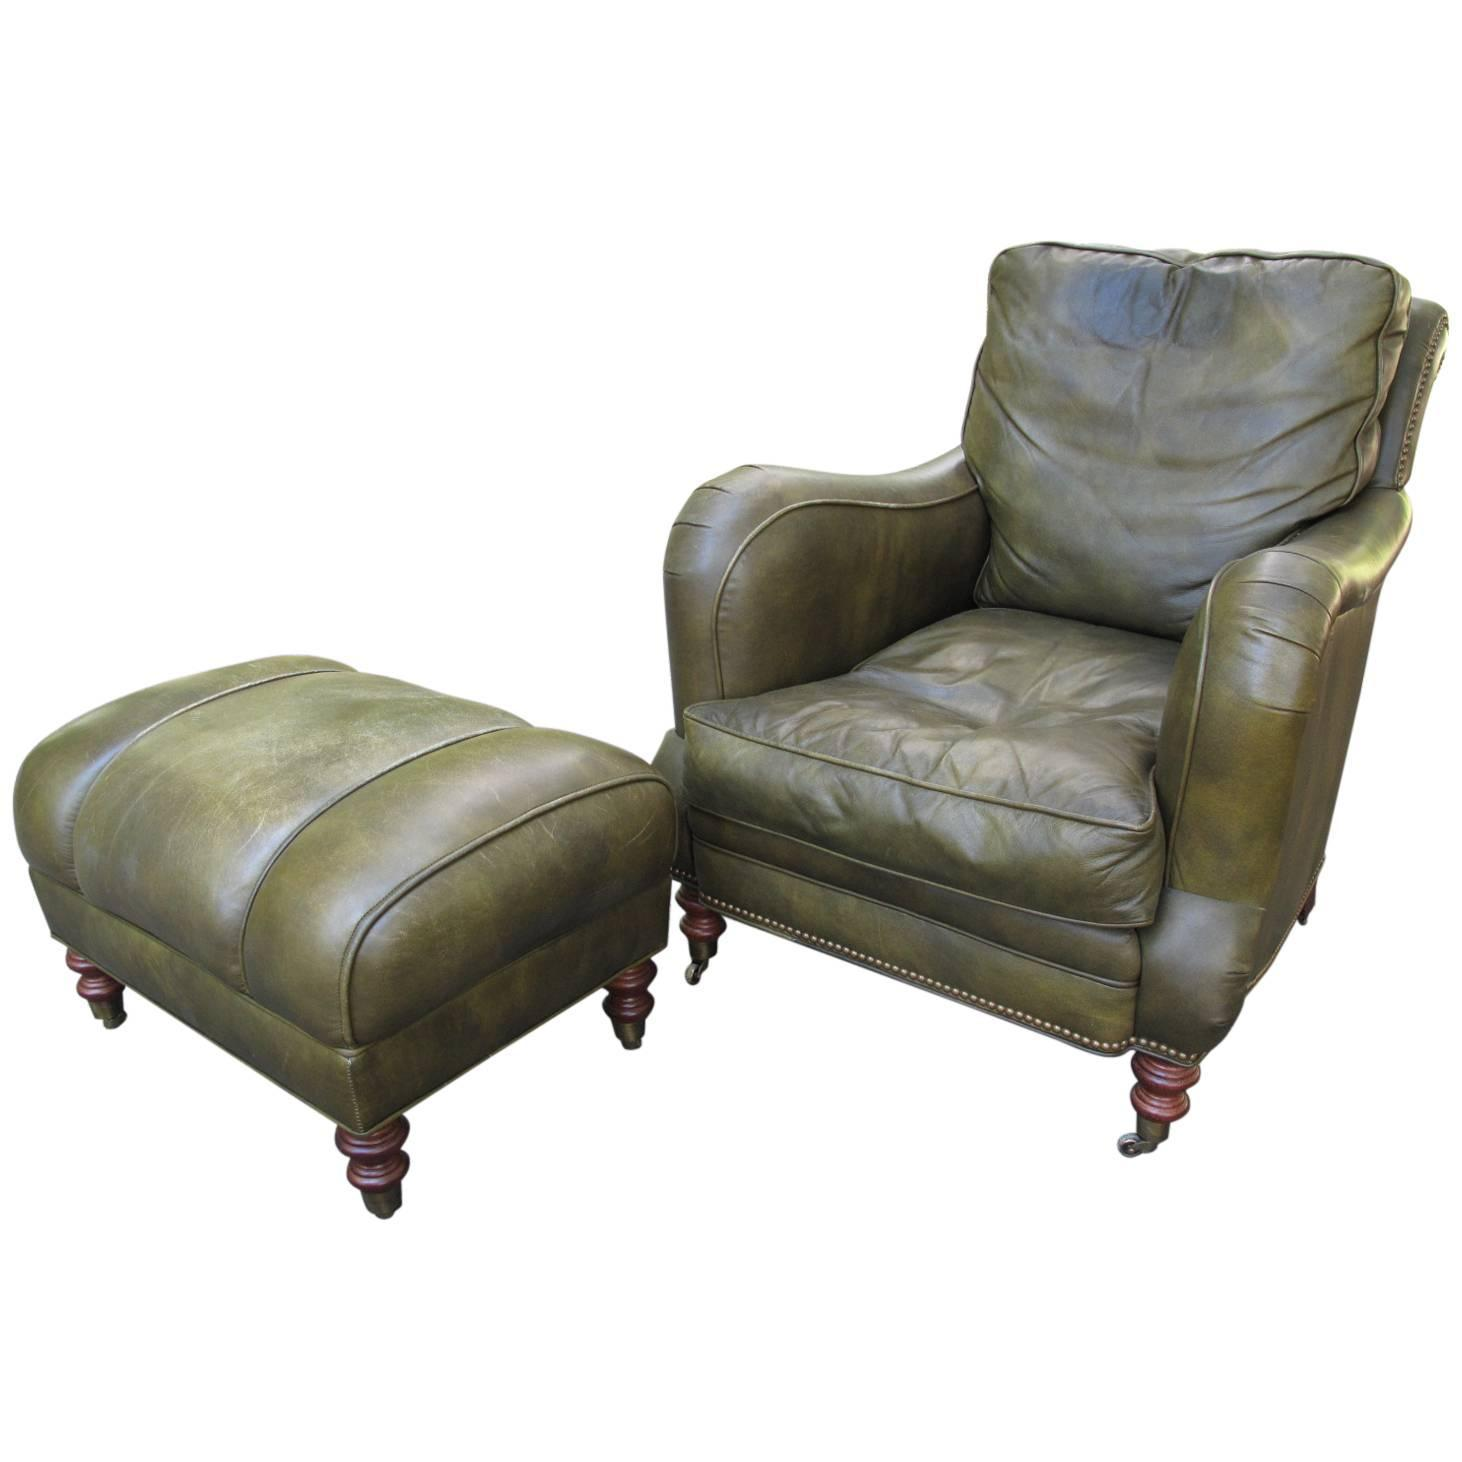 Leather club chair with ottoman at 1stdibs for Chair ottoman